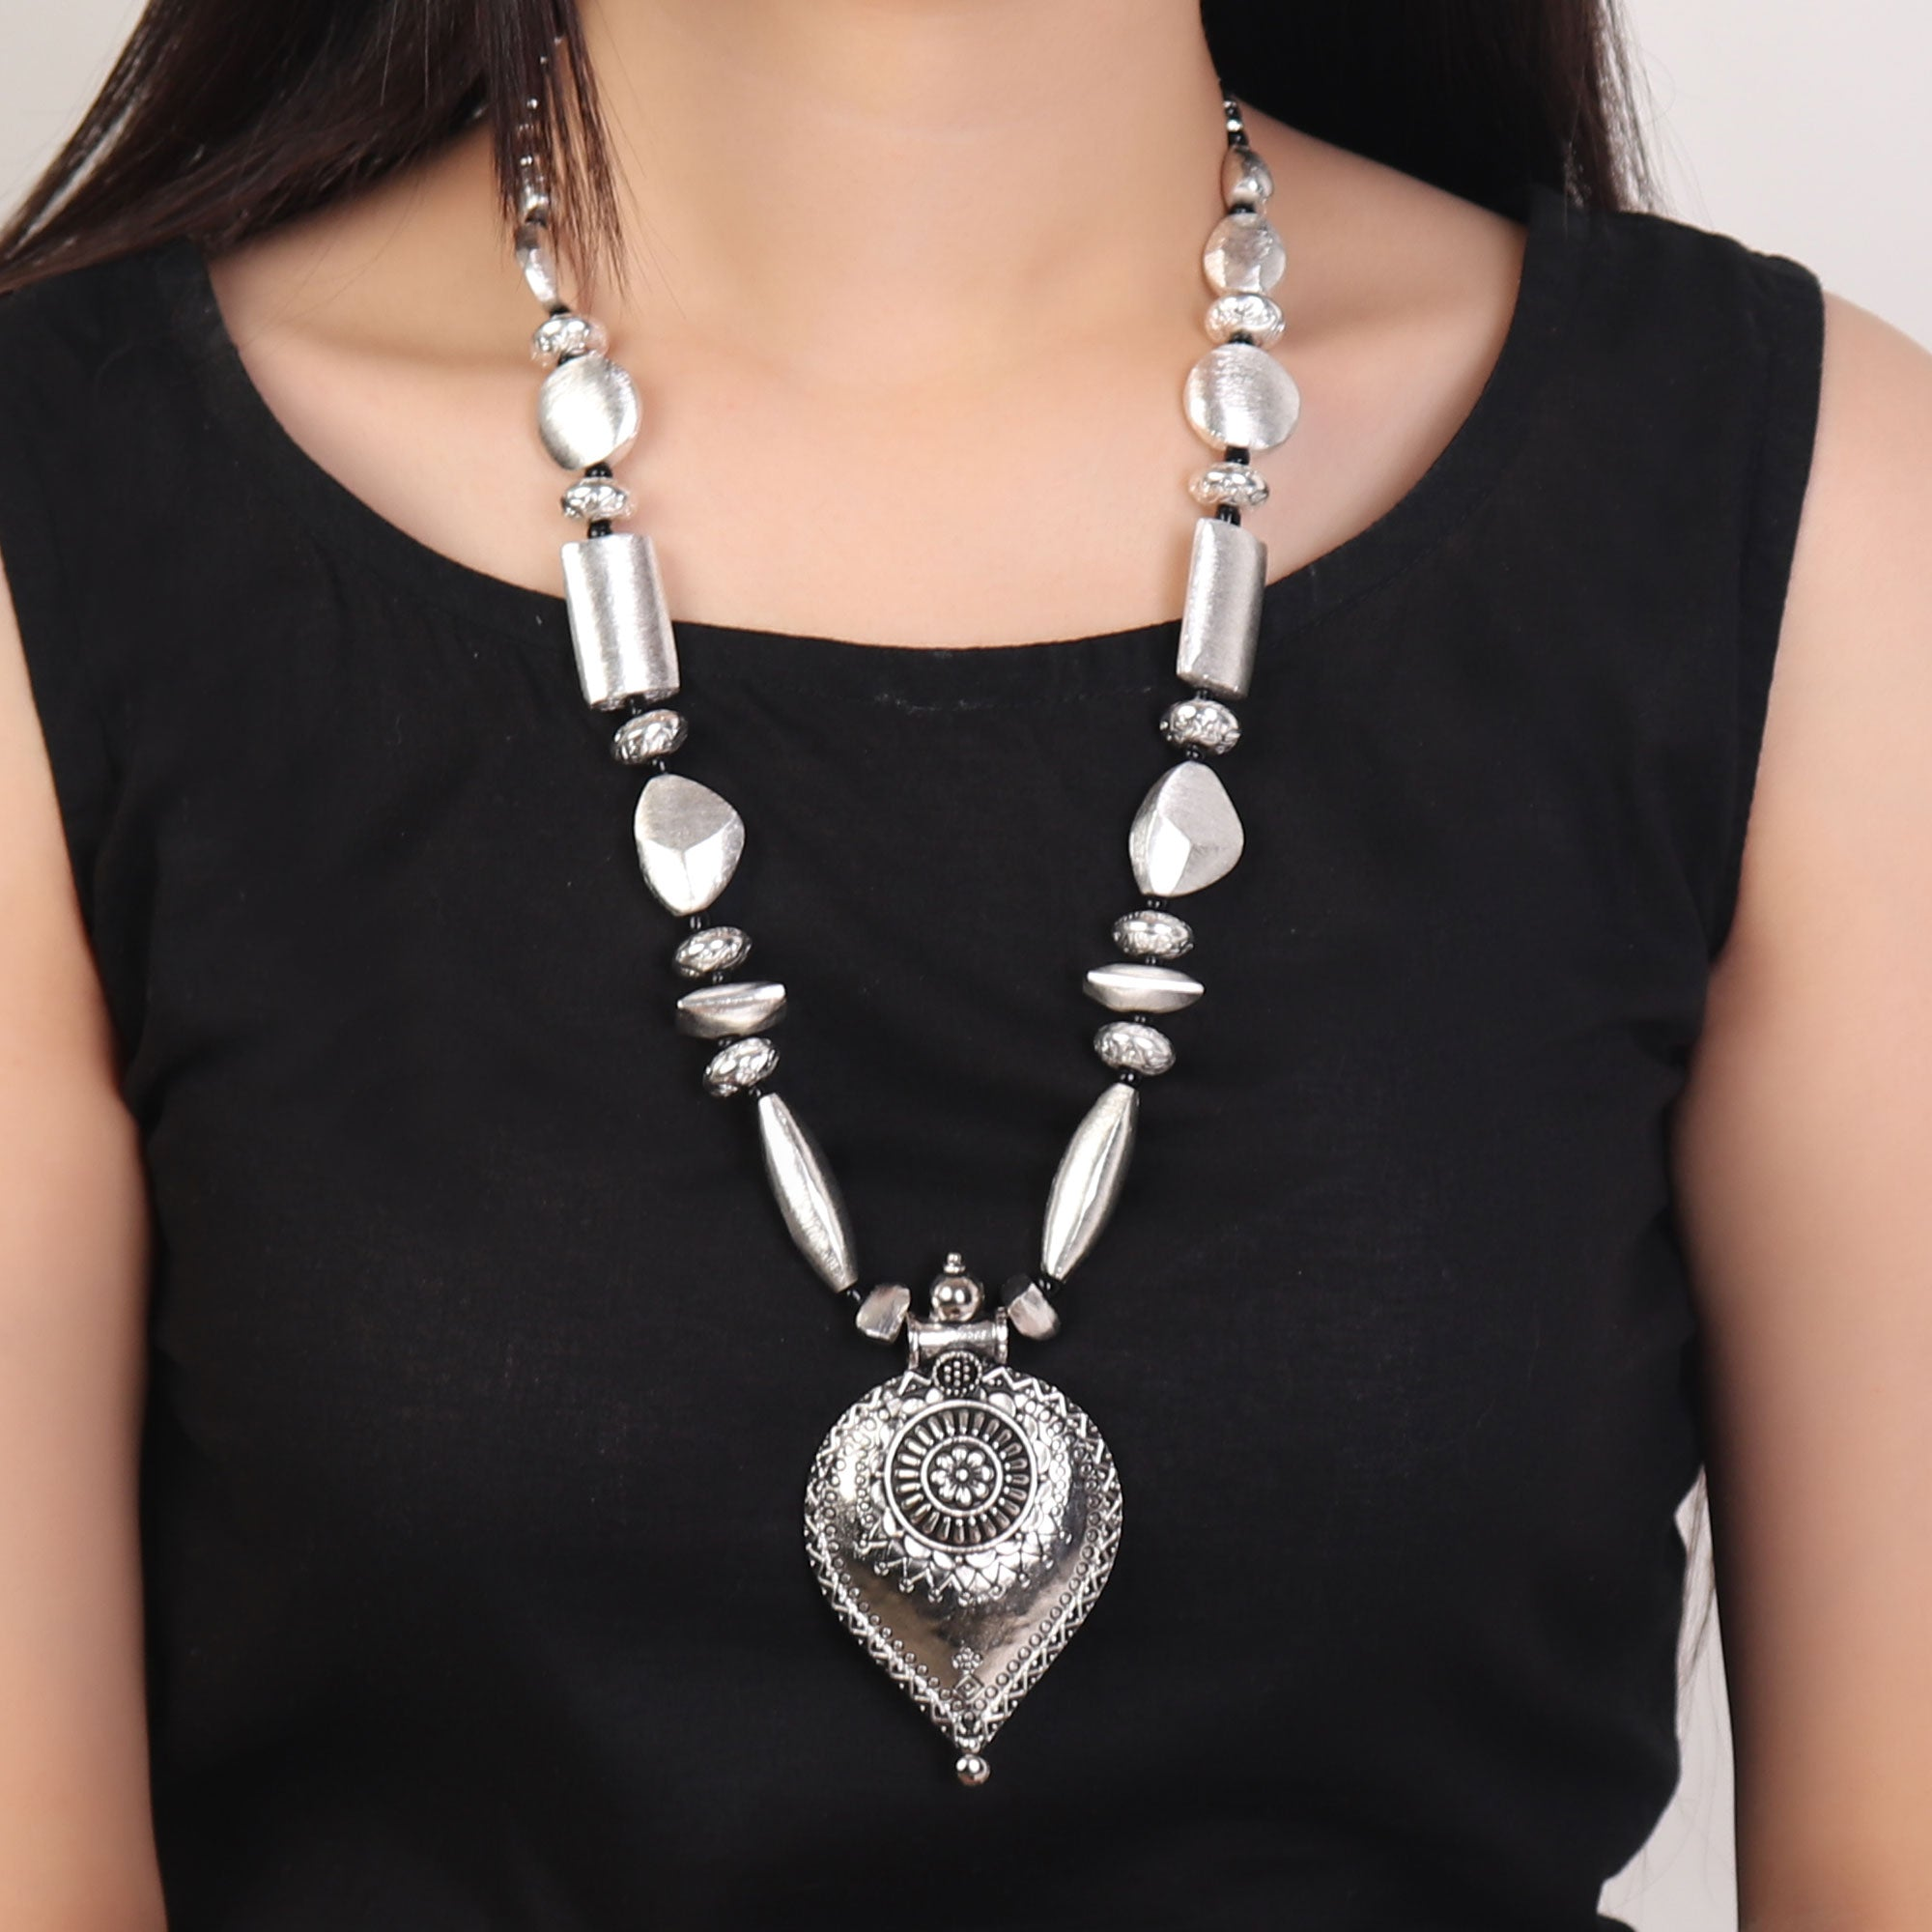 Necklace,Daytime Basic Necklace - Cippele Multi Store